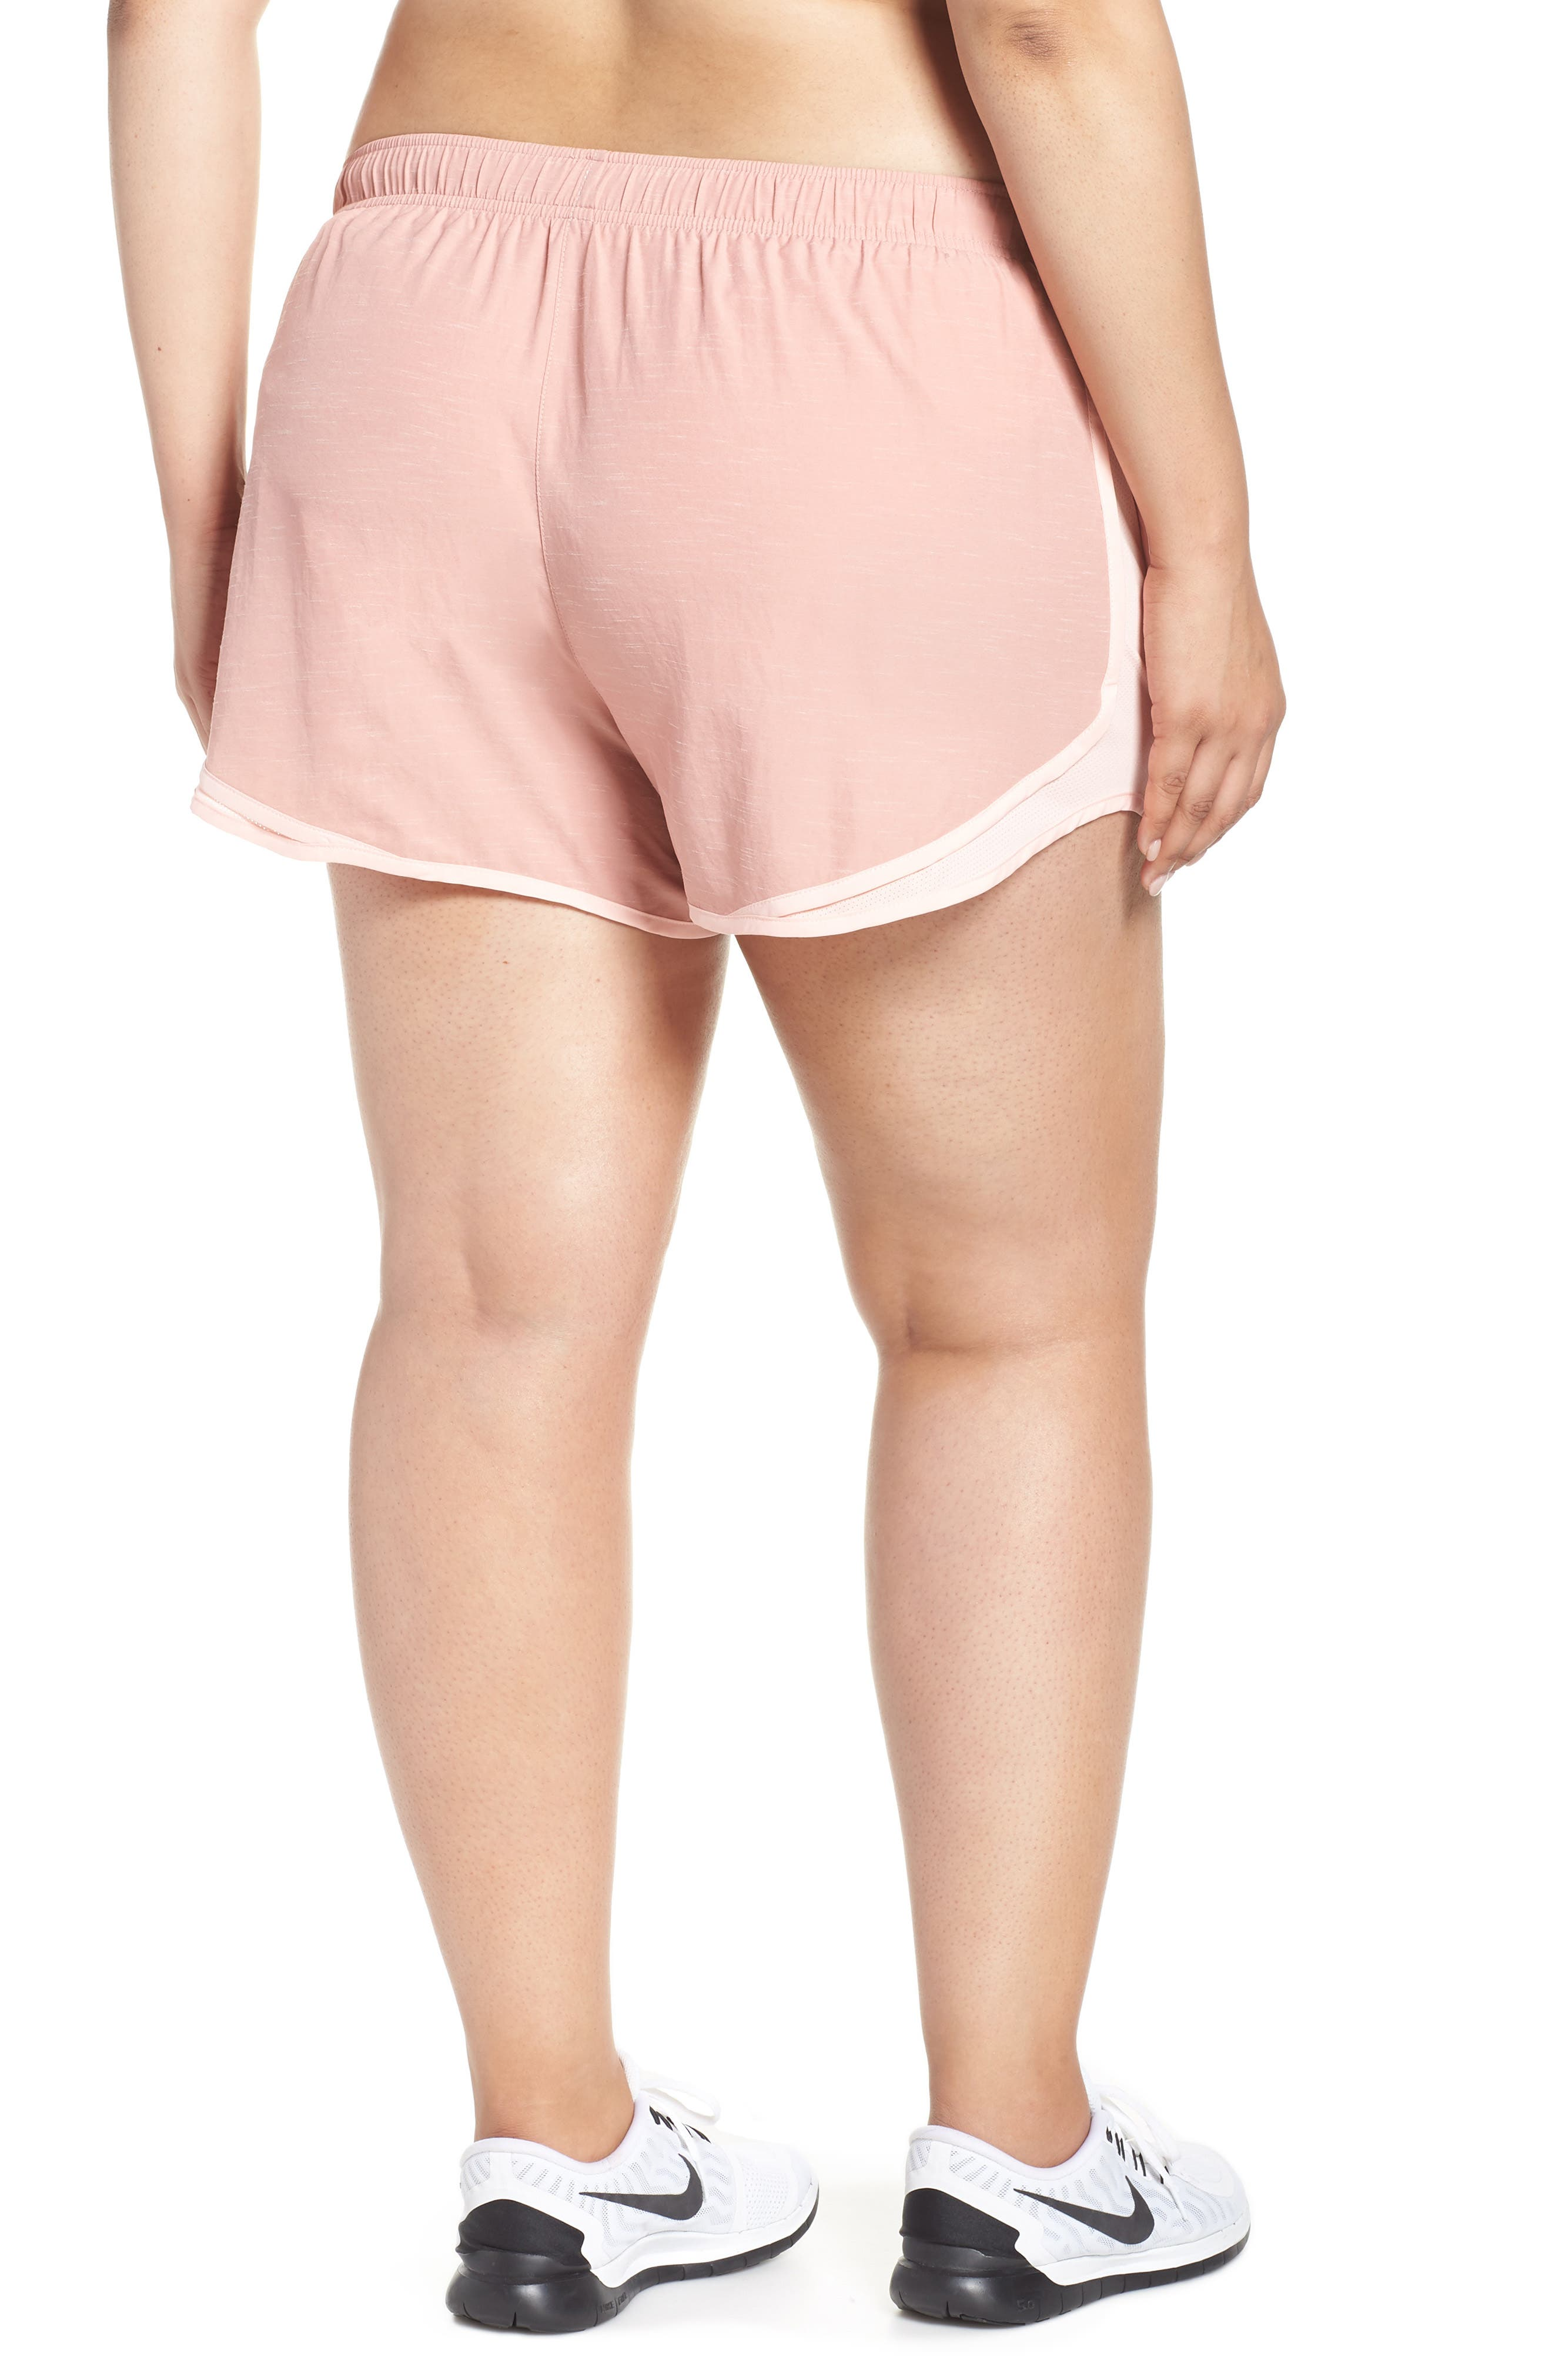 Dry Tempo High Rise Running Shorts,                             Alternate thumbnail 2, color,                             RUST PINK/ STORM PINK